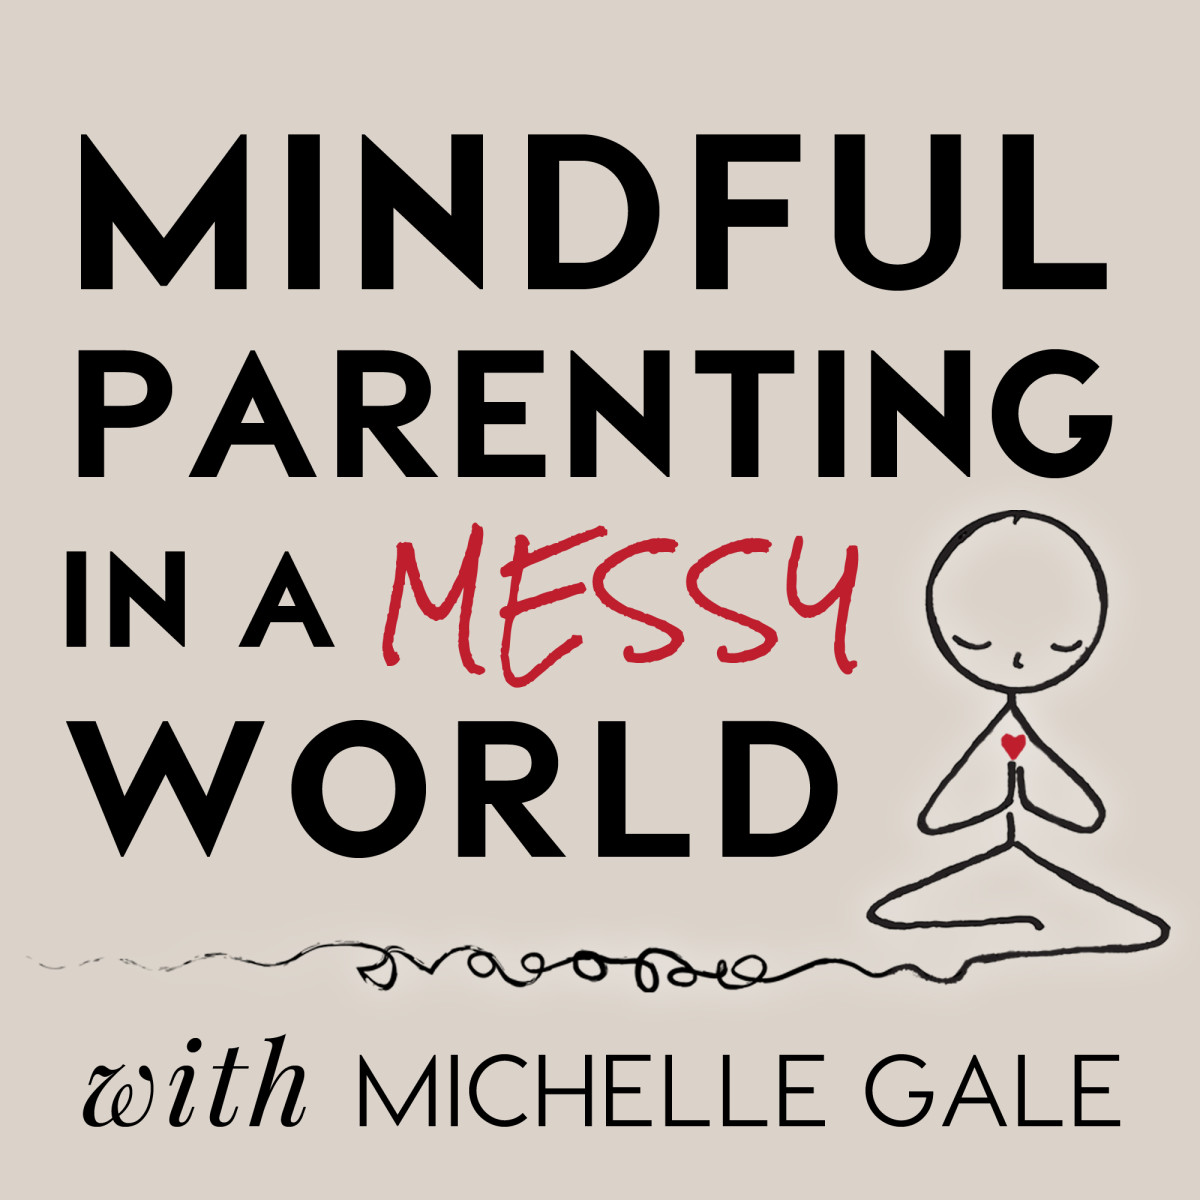 Image Credit: Mindful Parenting in a Messy World